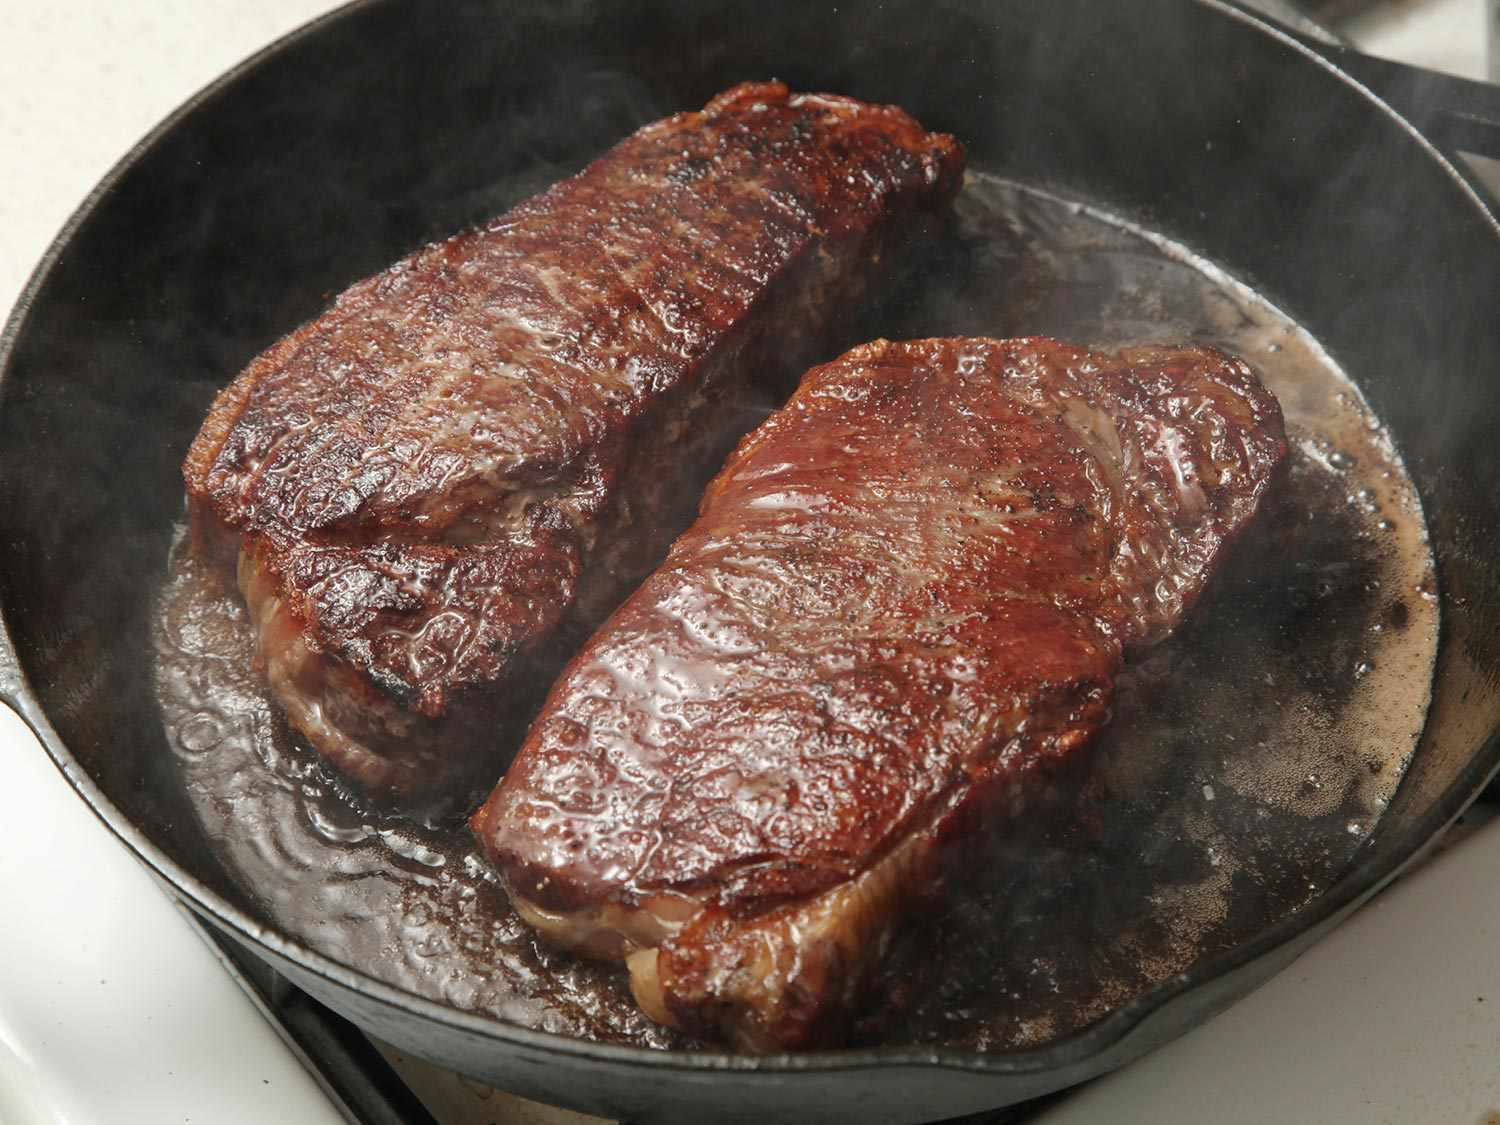 Two thick steaks cooking on a cast-iron skillet with the reverse-sear method